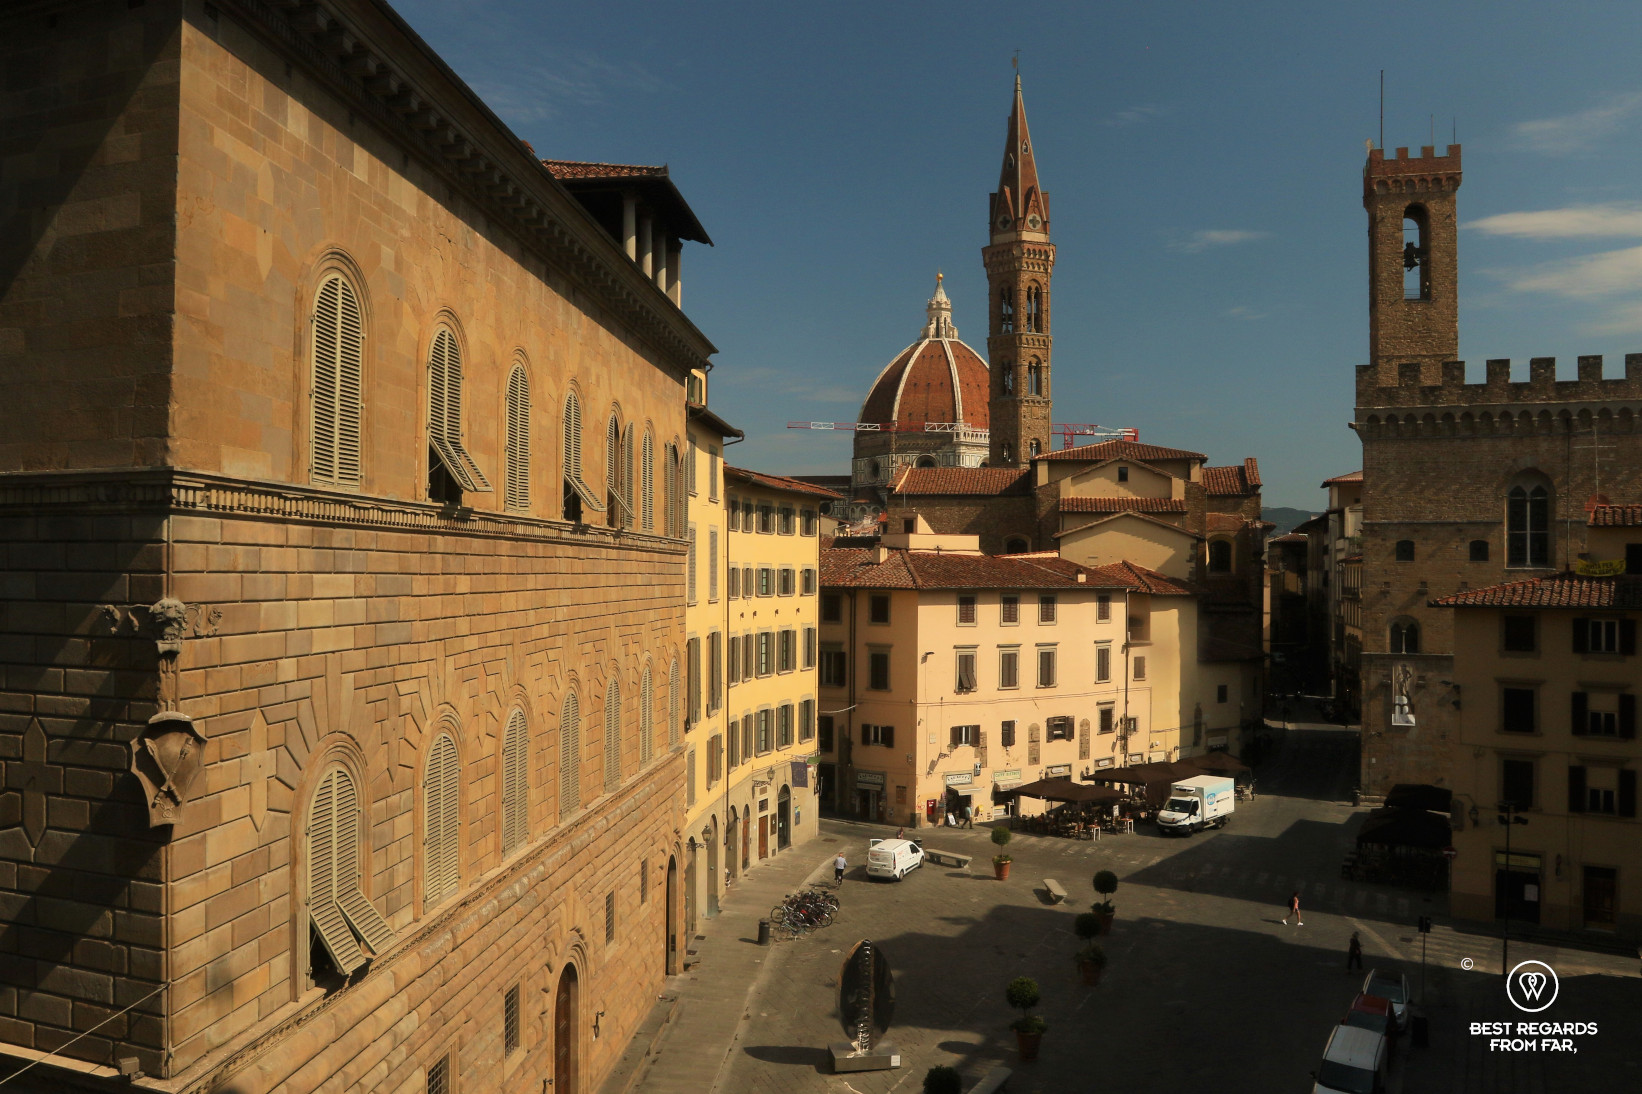 View from the Hotel Bernini Palace on Da Vinci's vantage point and the Bargello museum, Florence, Italy